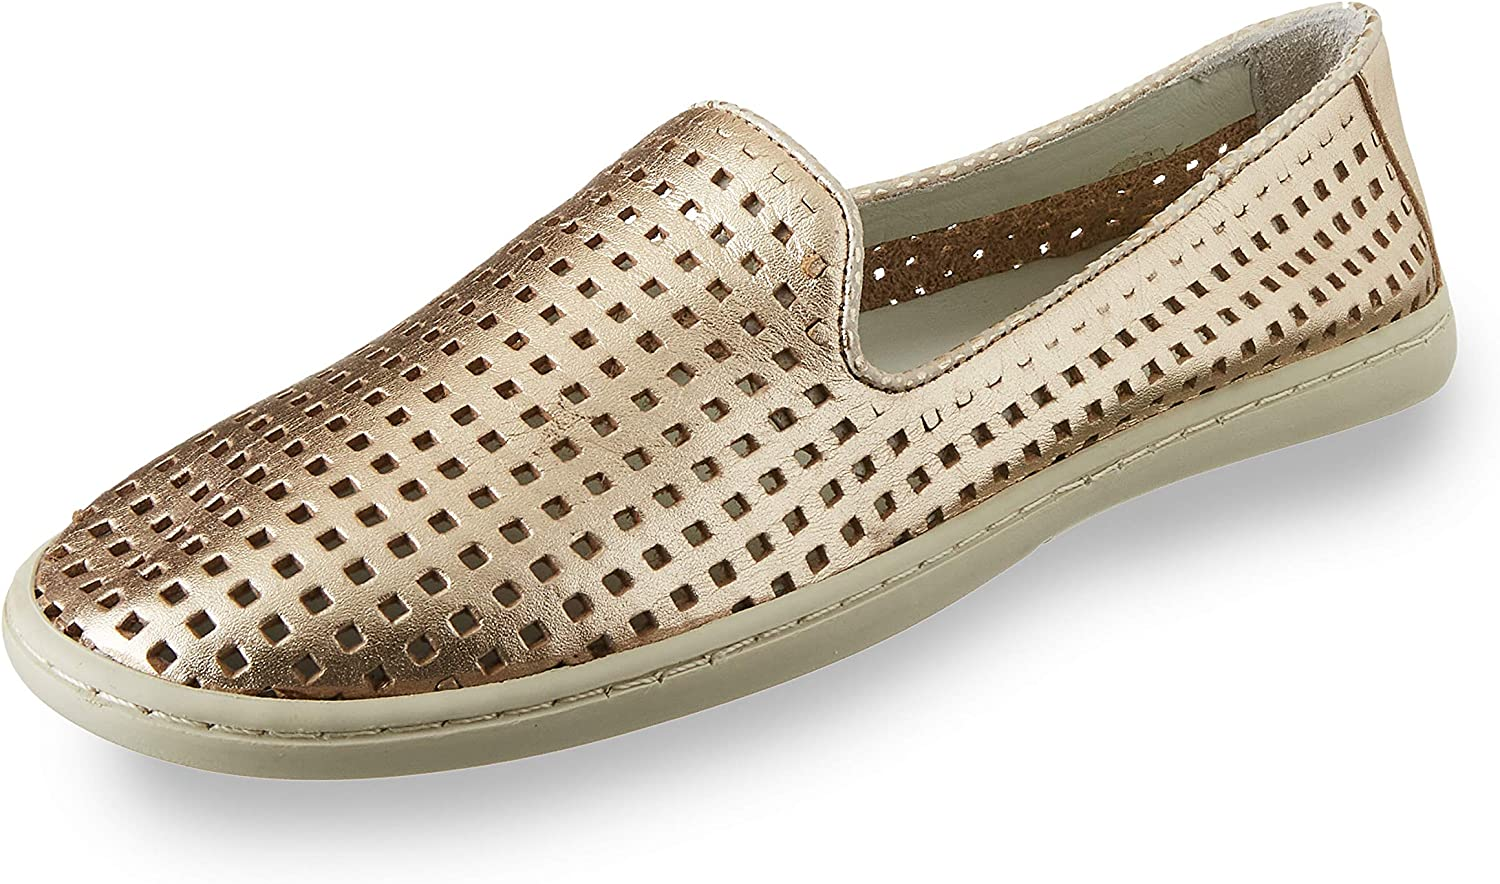 Chocolat Blu Move Brenn - Perforated Slip-On Loafer Shoe in Gold Leather